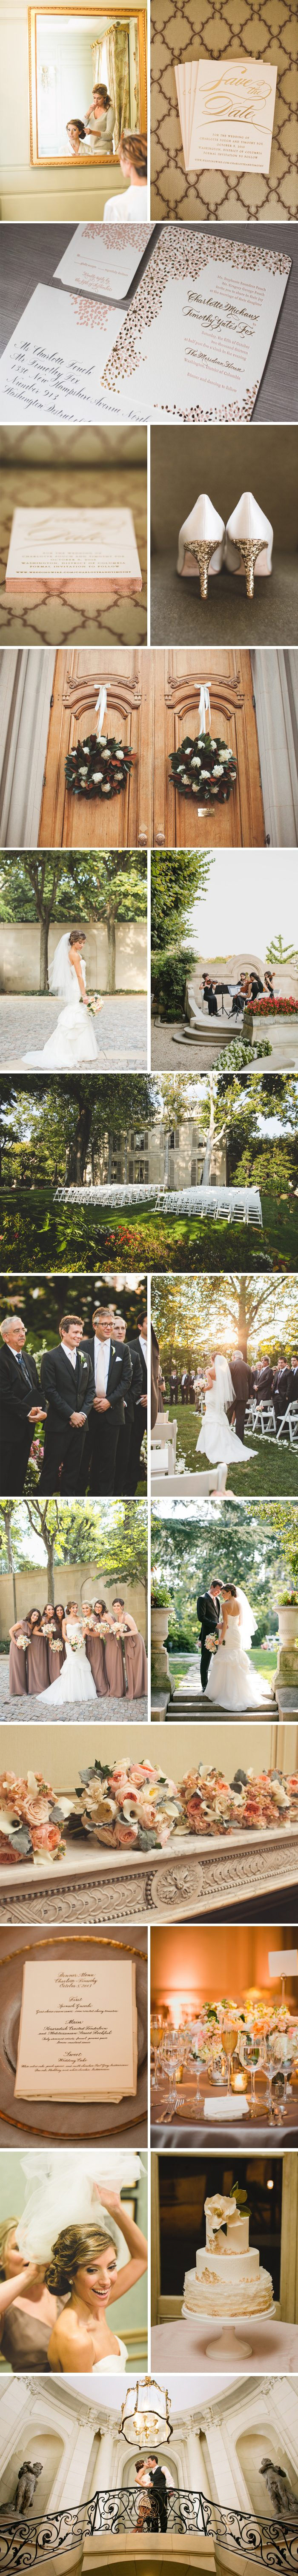 Real Bella Figura Wedding at the Meridian House